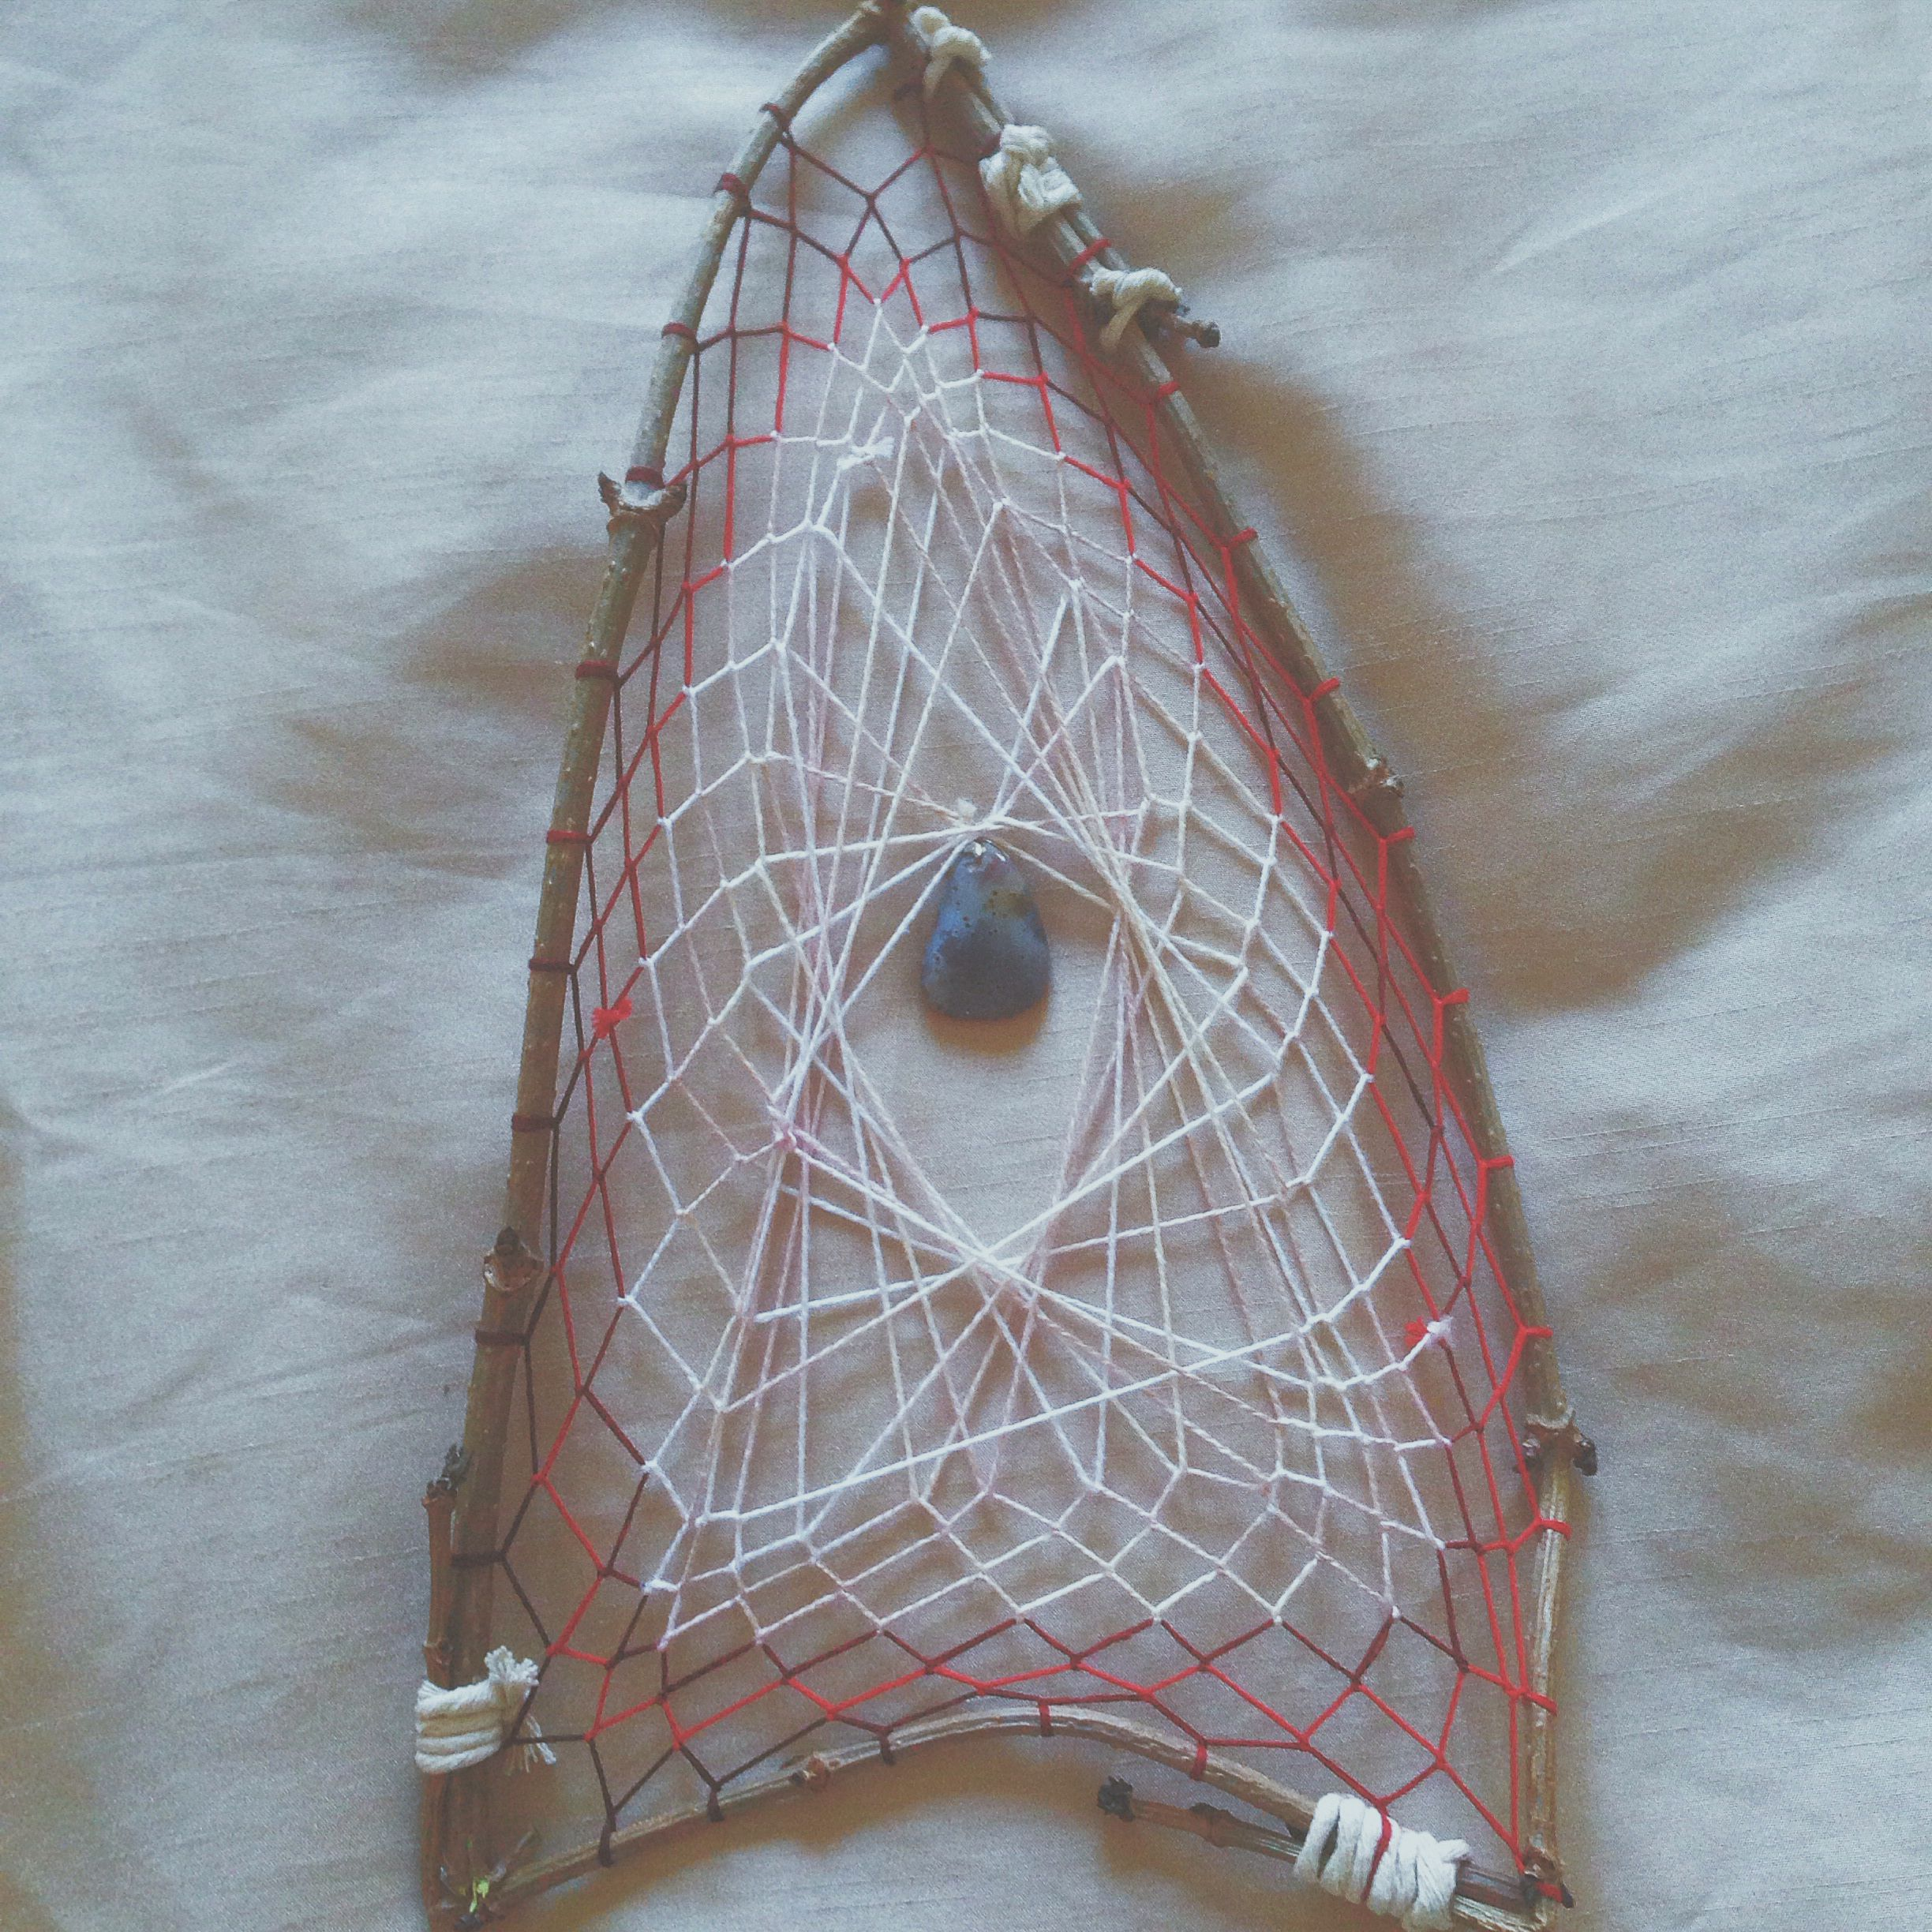 Dream Catcher Maker Hand made natural dream catcher maker from dyed thread and tree 33